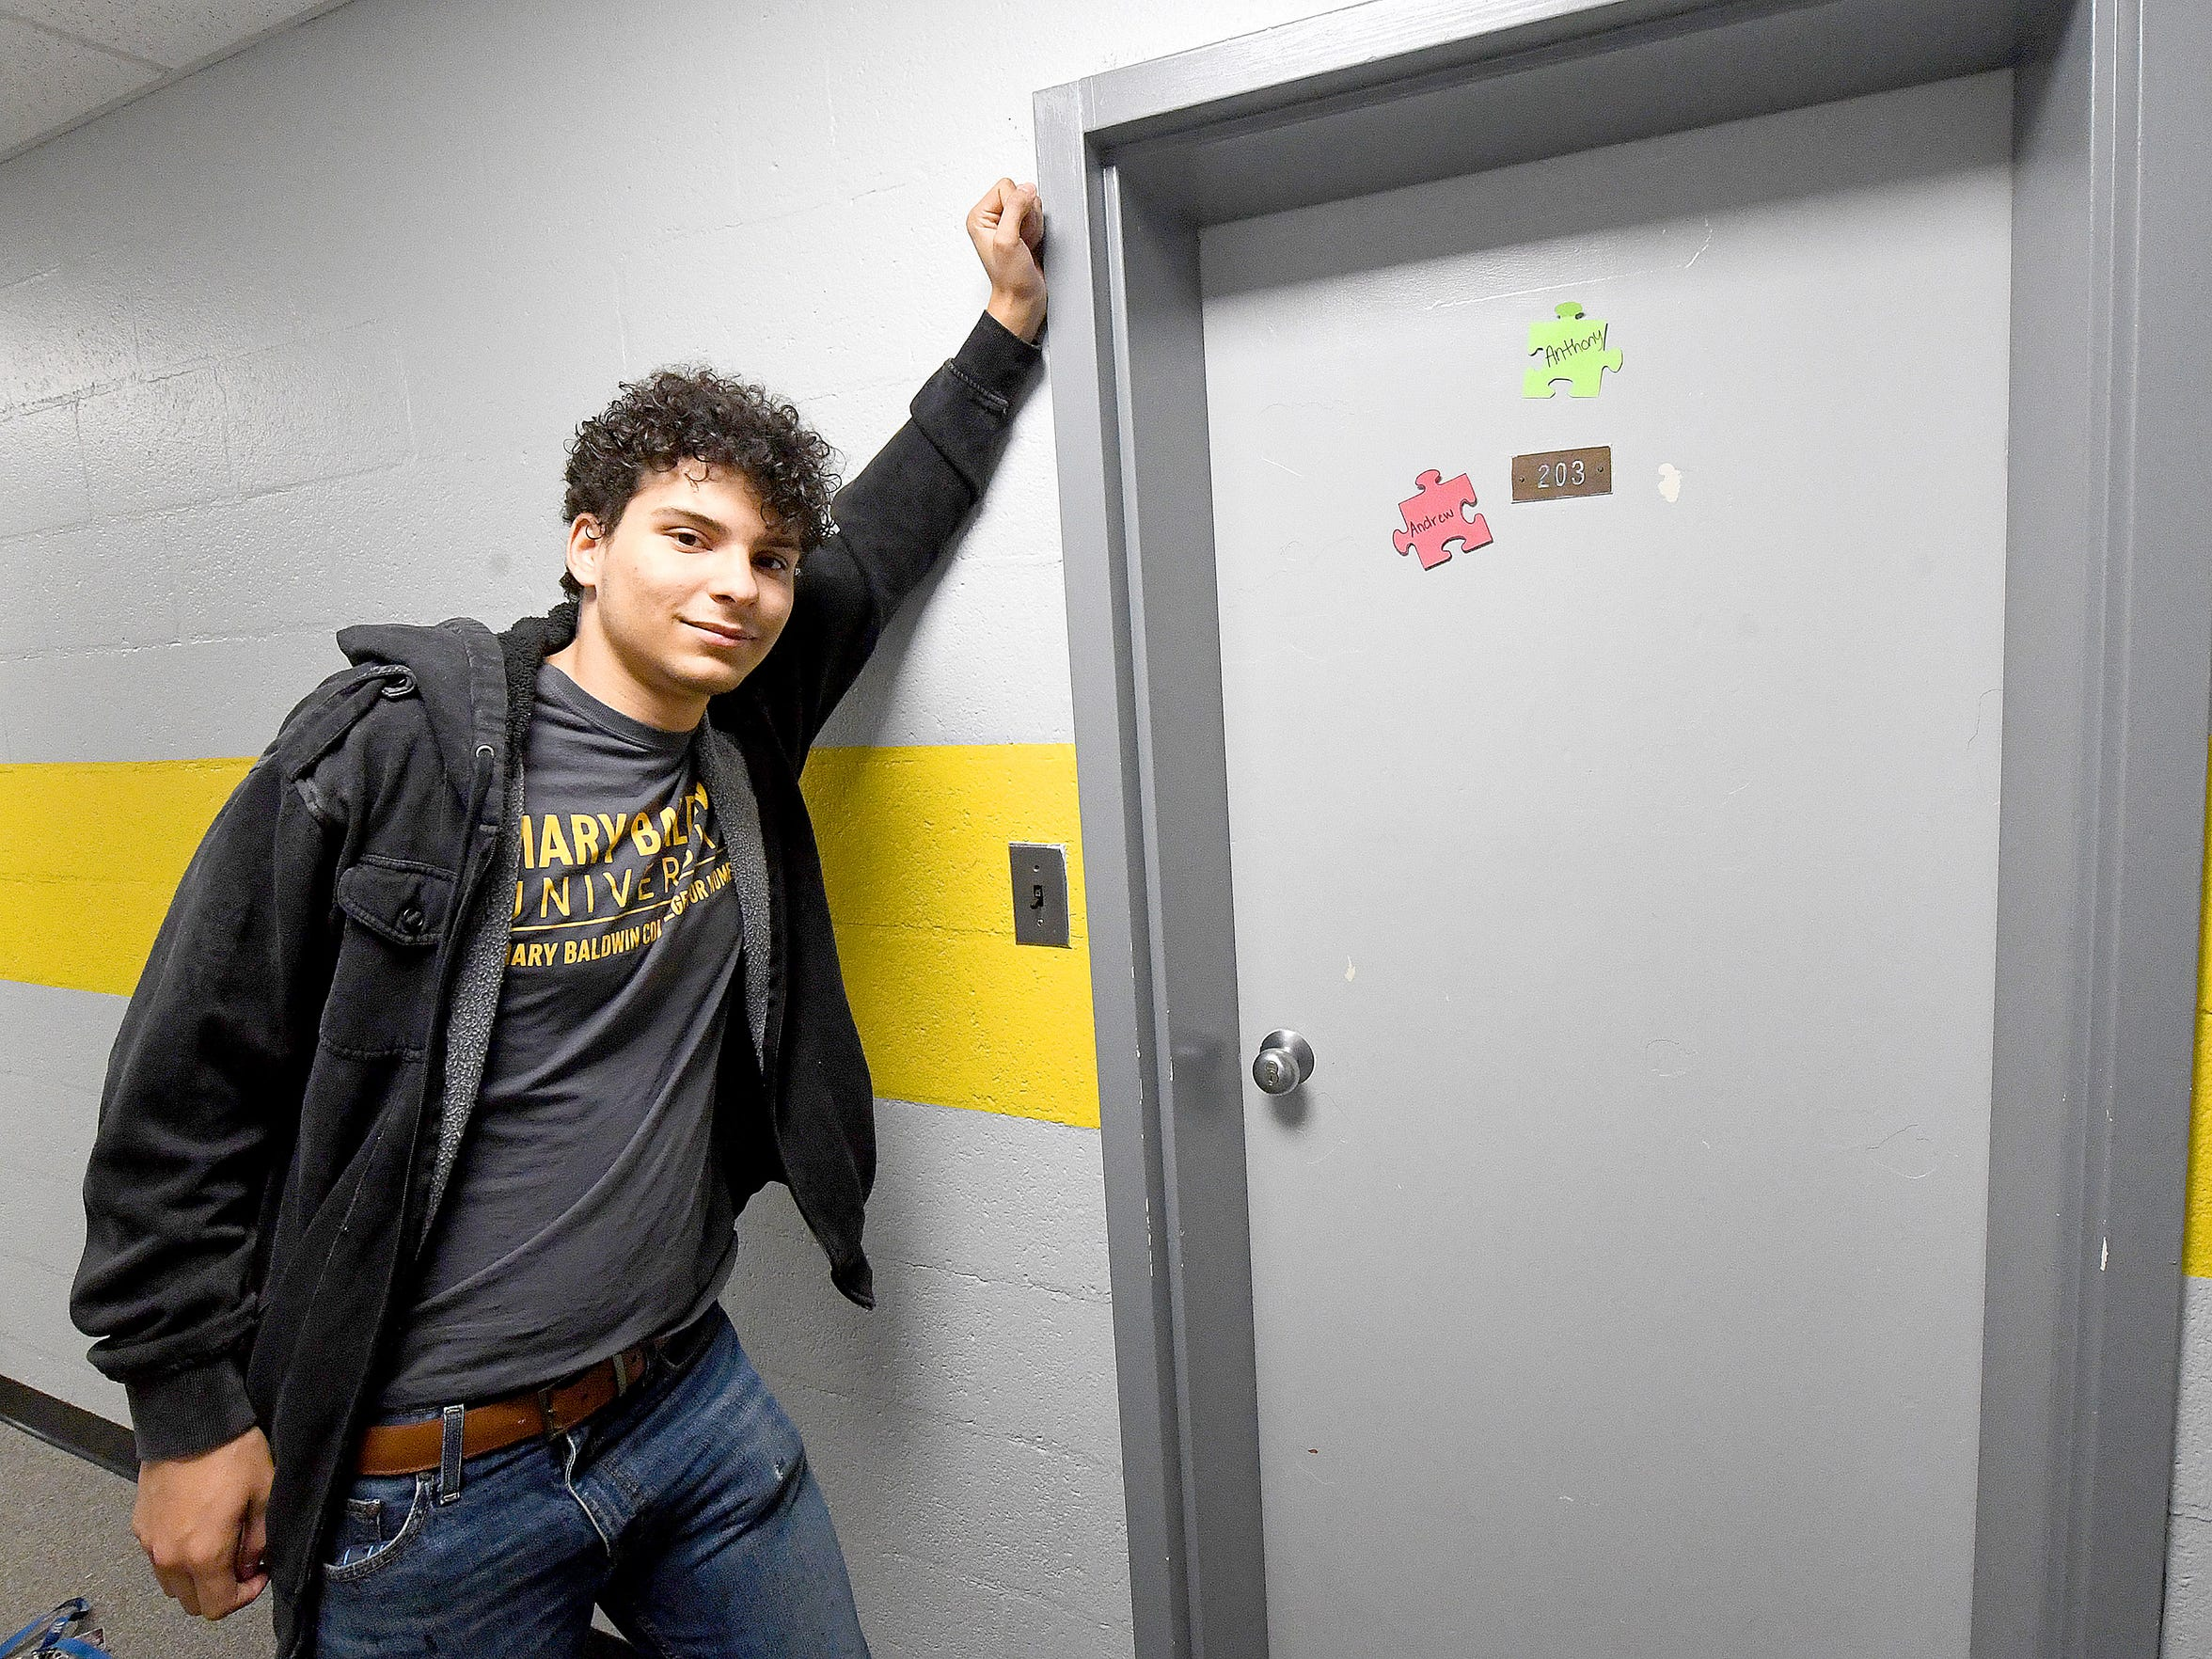 Logan Davenport, now a junior at Mary Baldwin University, stands in the hallway outside his old dorm room in Tullidge Residence Hall.